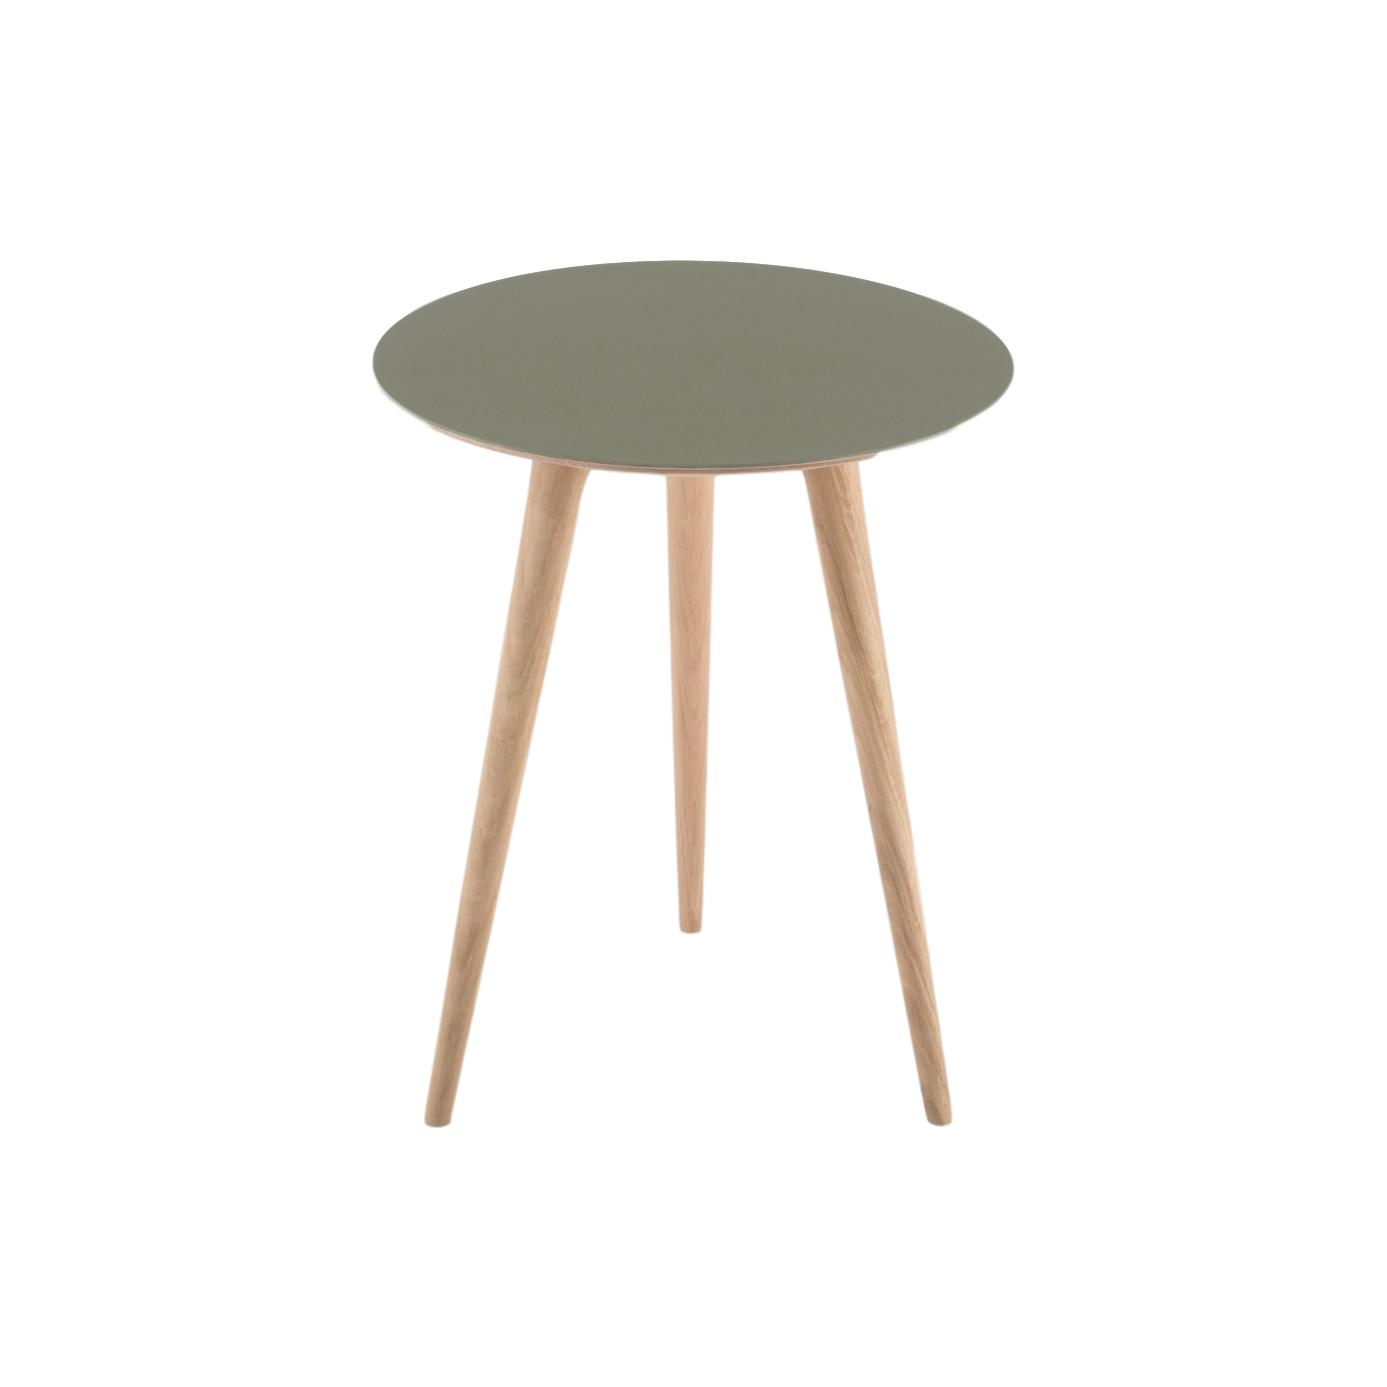 buy Arp Oak Side Table - Dark Olive online